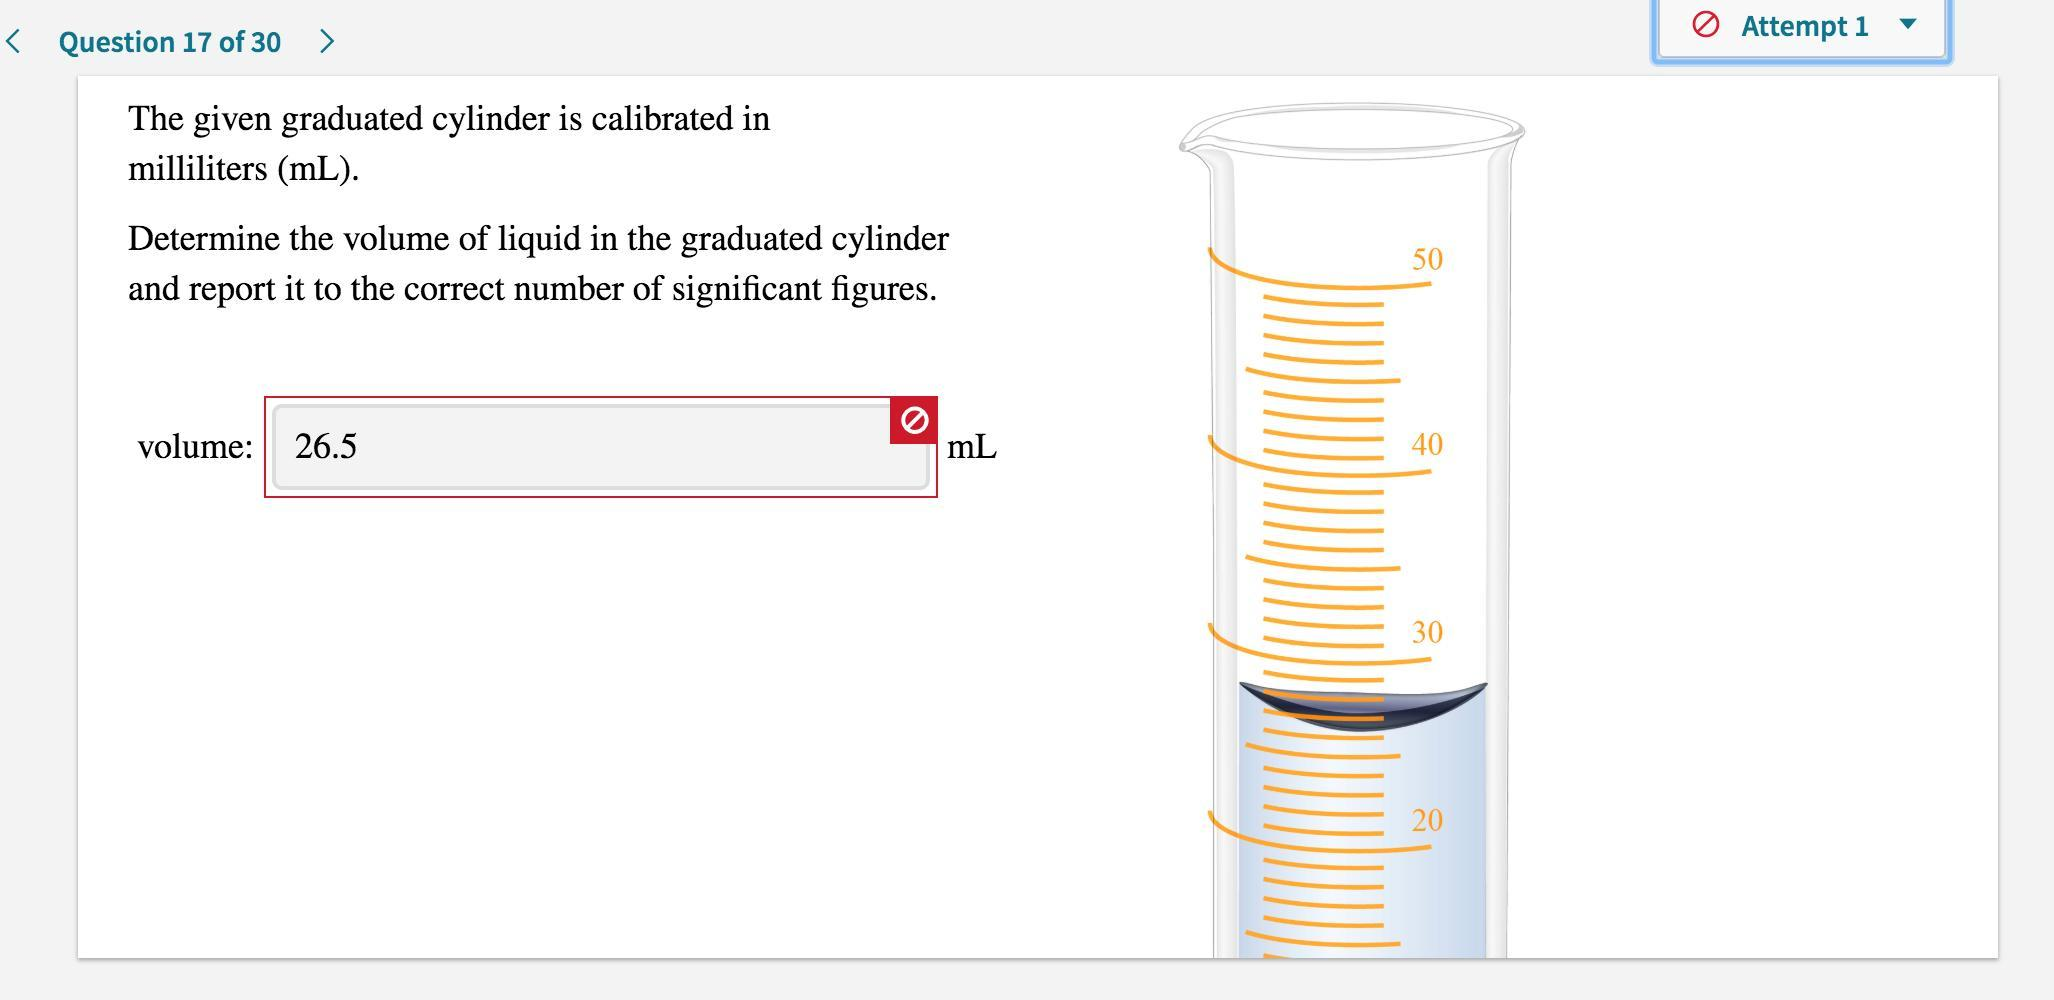 The Given Graduated Cylinder Is Calibrated In Milliliters